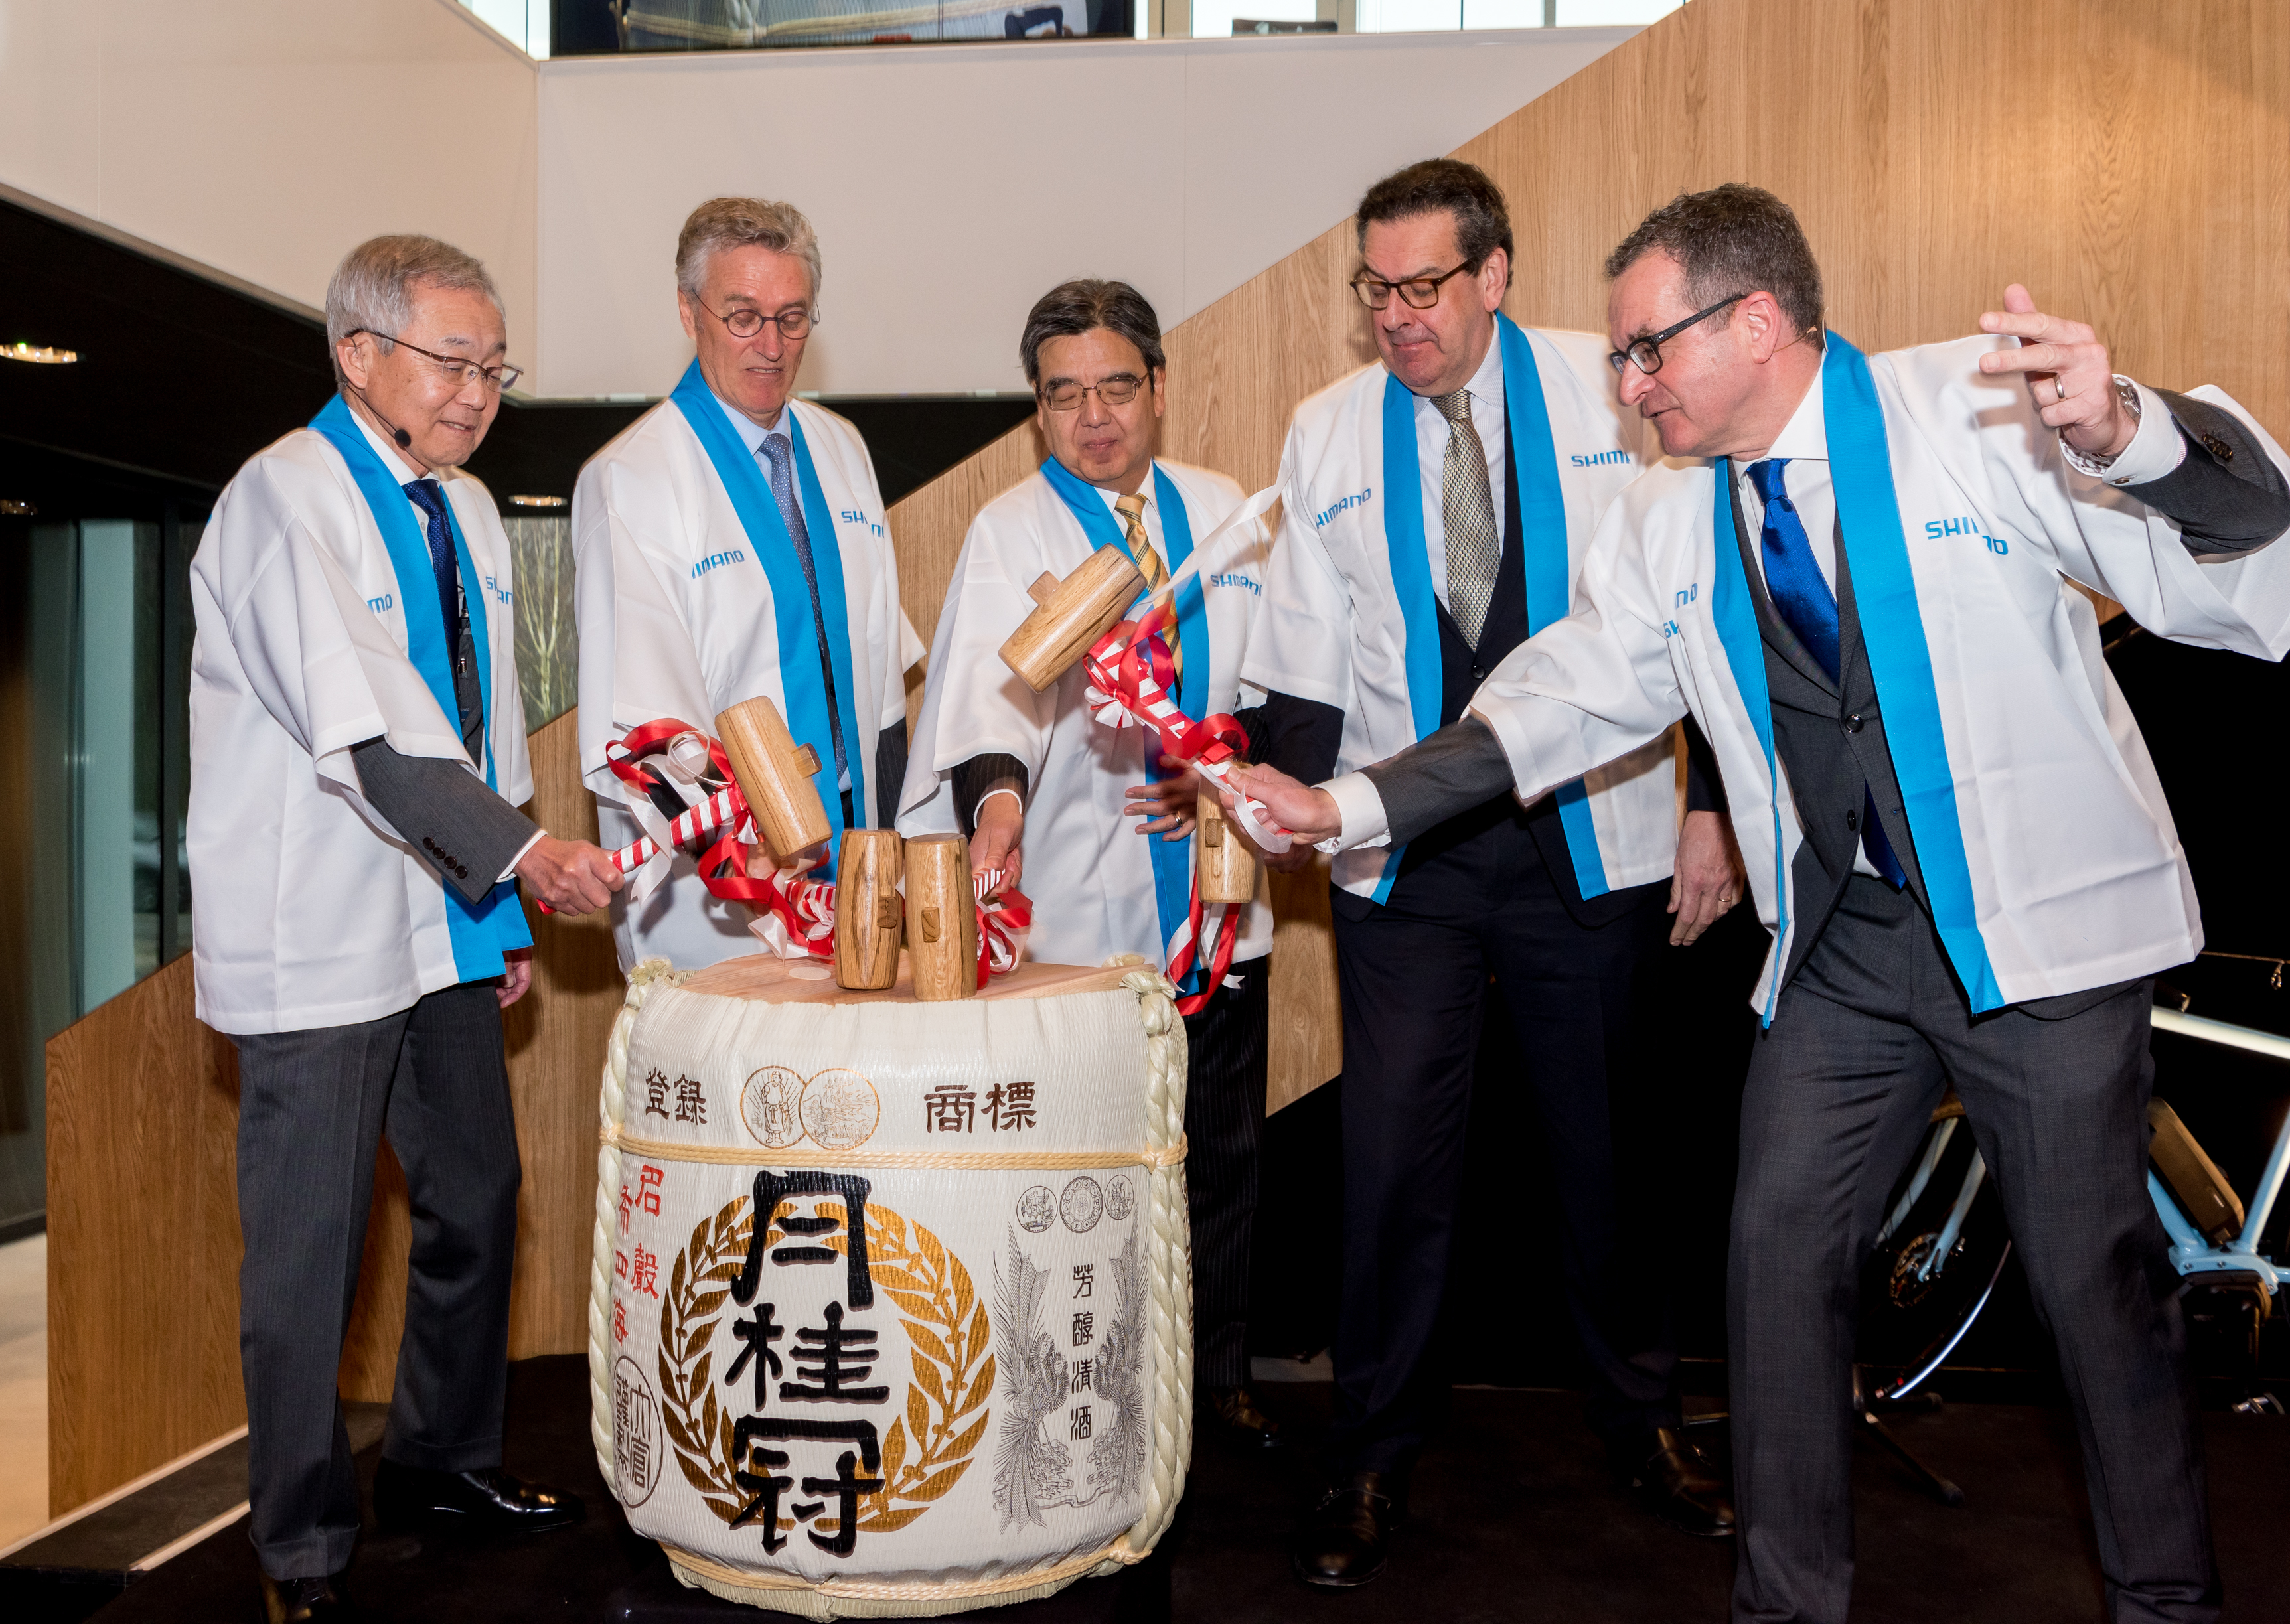 European headquarters opening in Eindhoven for Japanese company Shimano